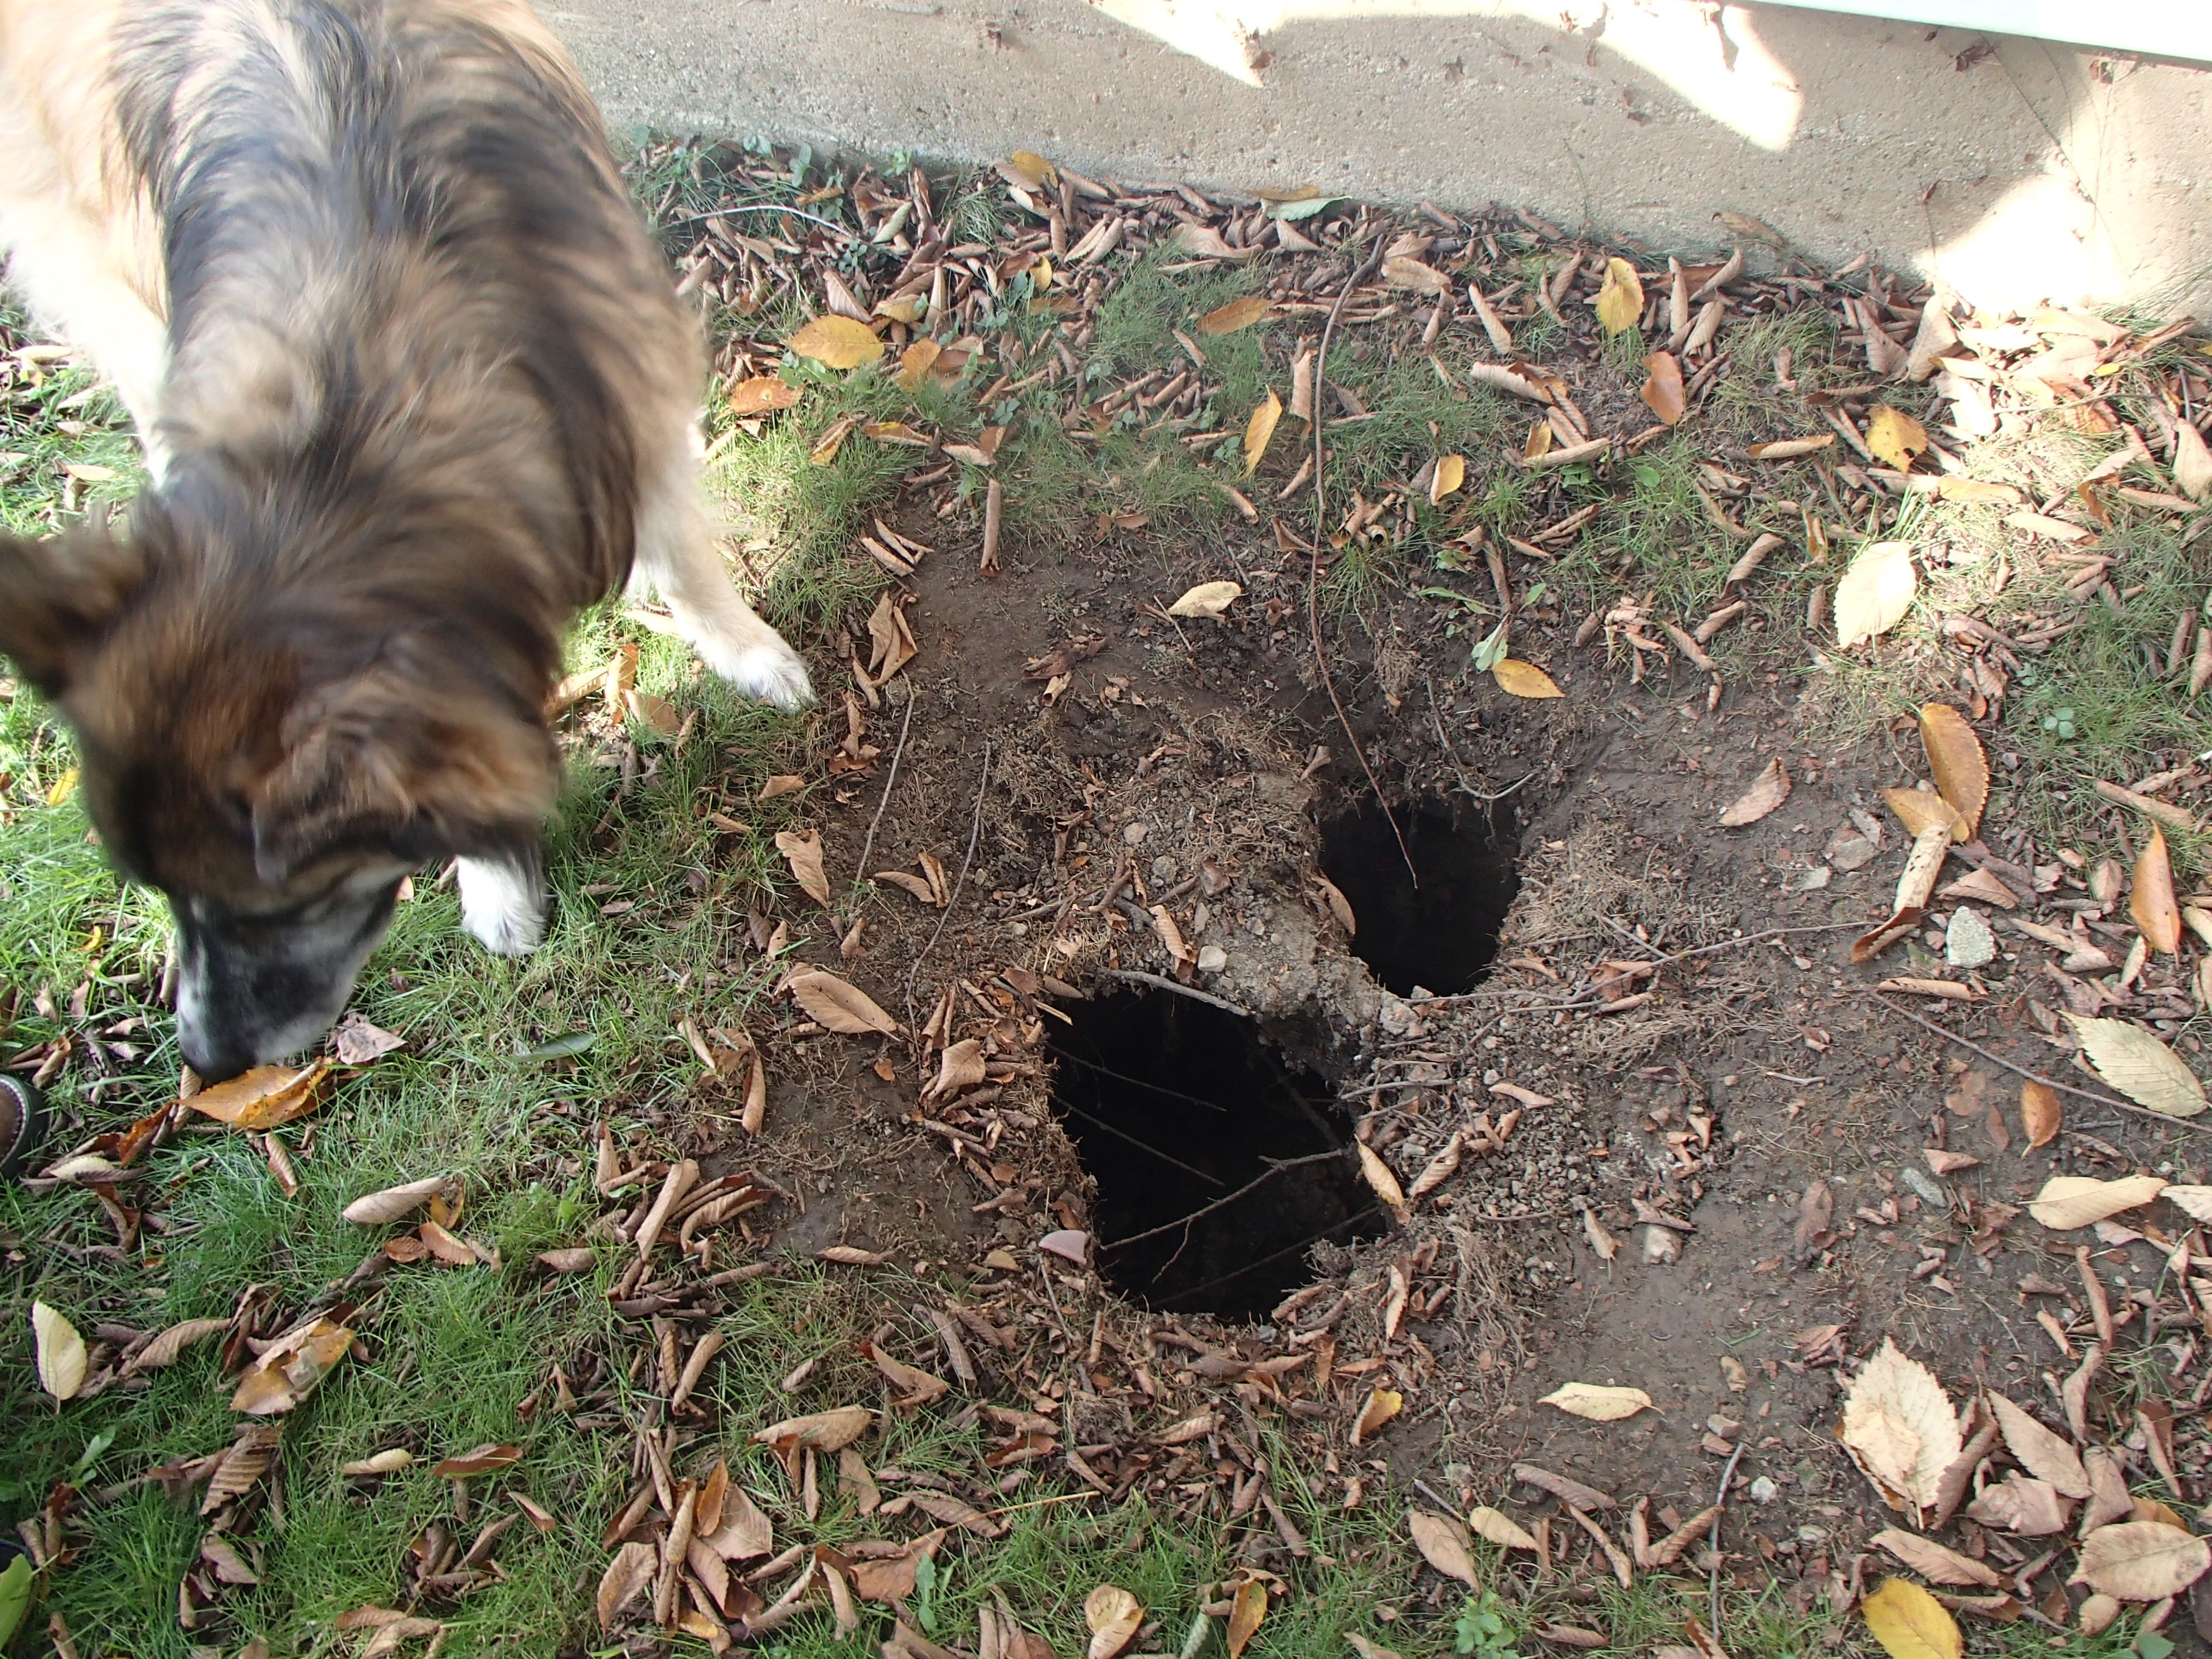 The Short Version Is, A Sinkhole Opened Up In My Back Yard. More Disturbing